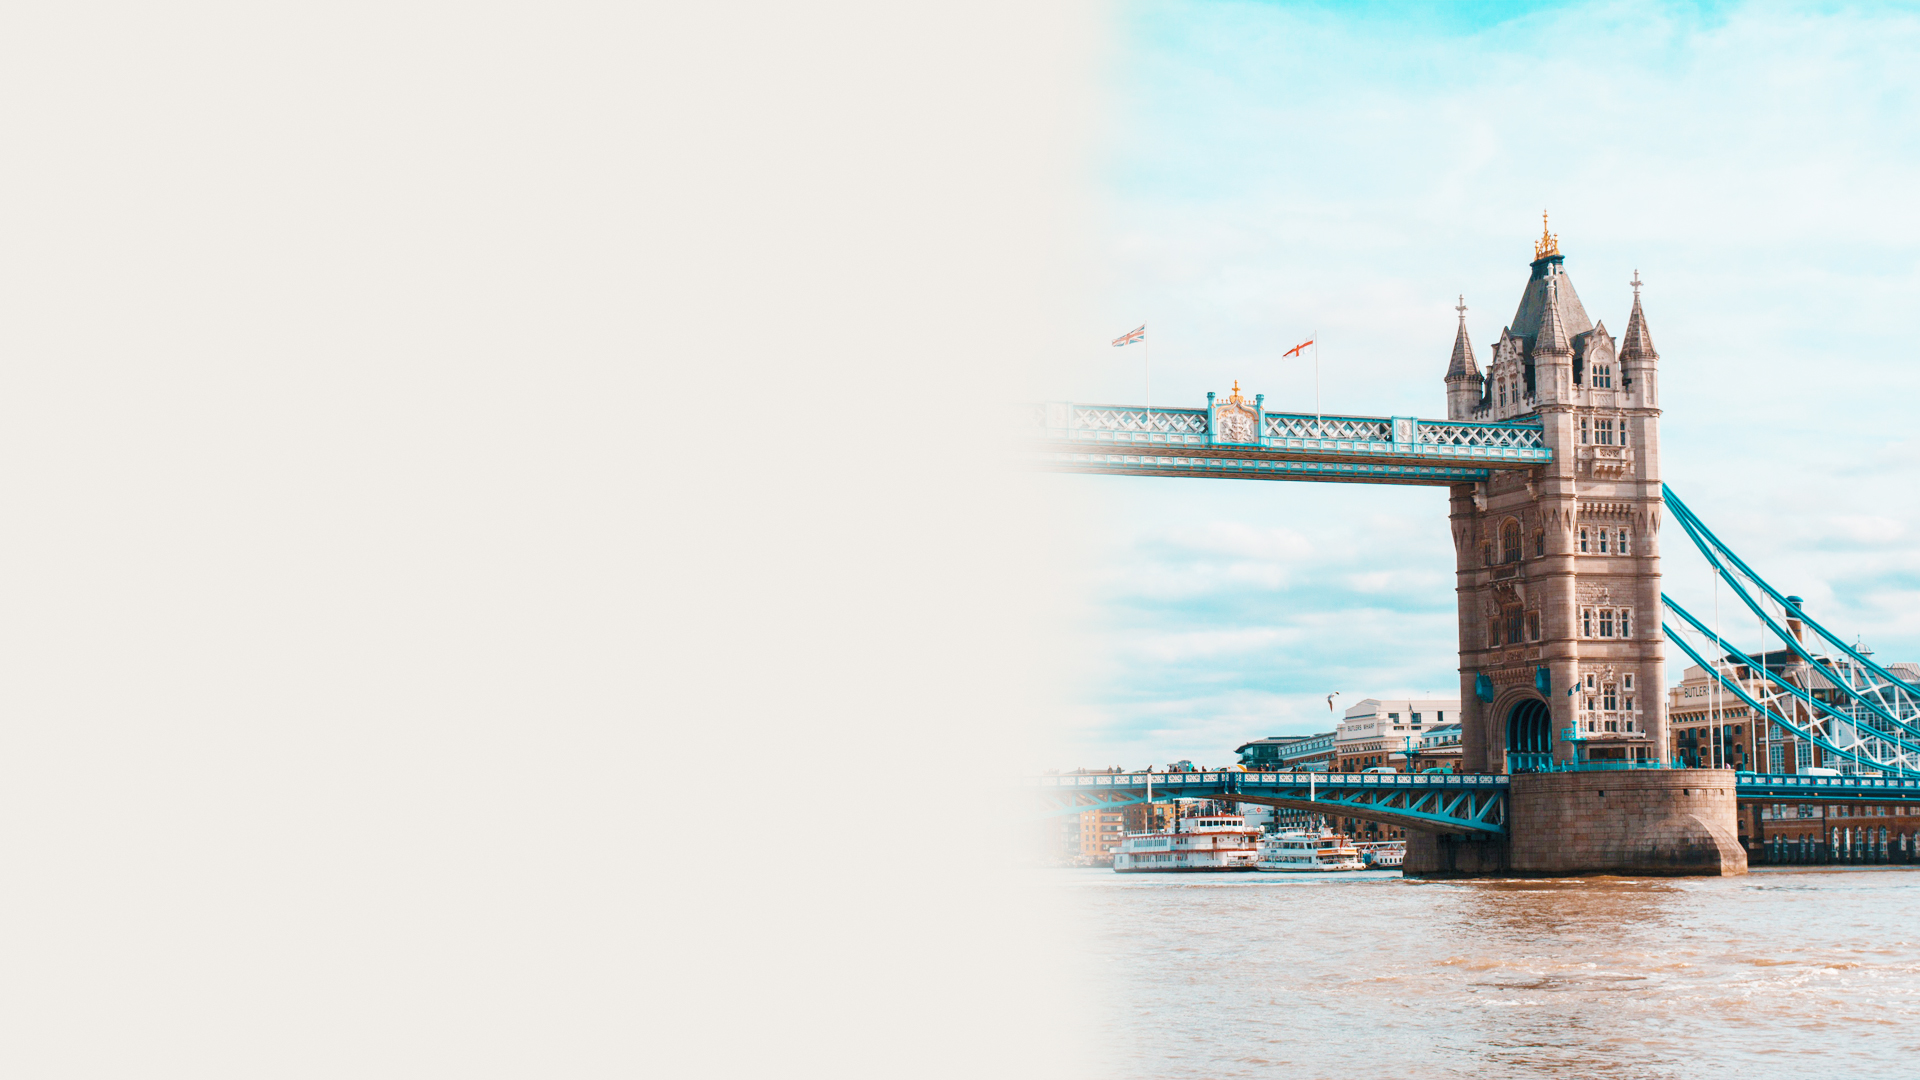 Roberts & Denny's London Removals and Storage Clapham